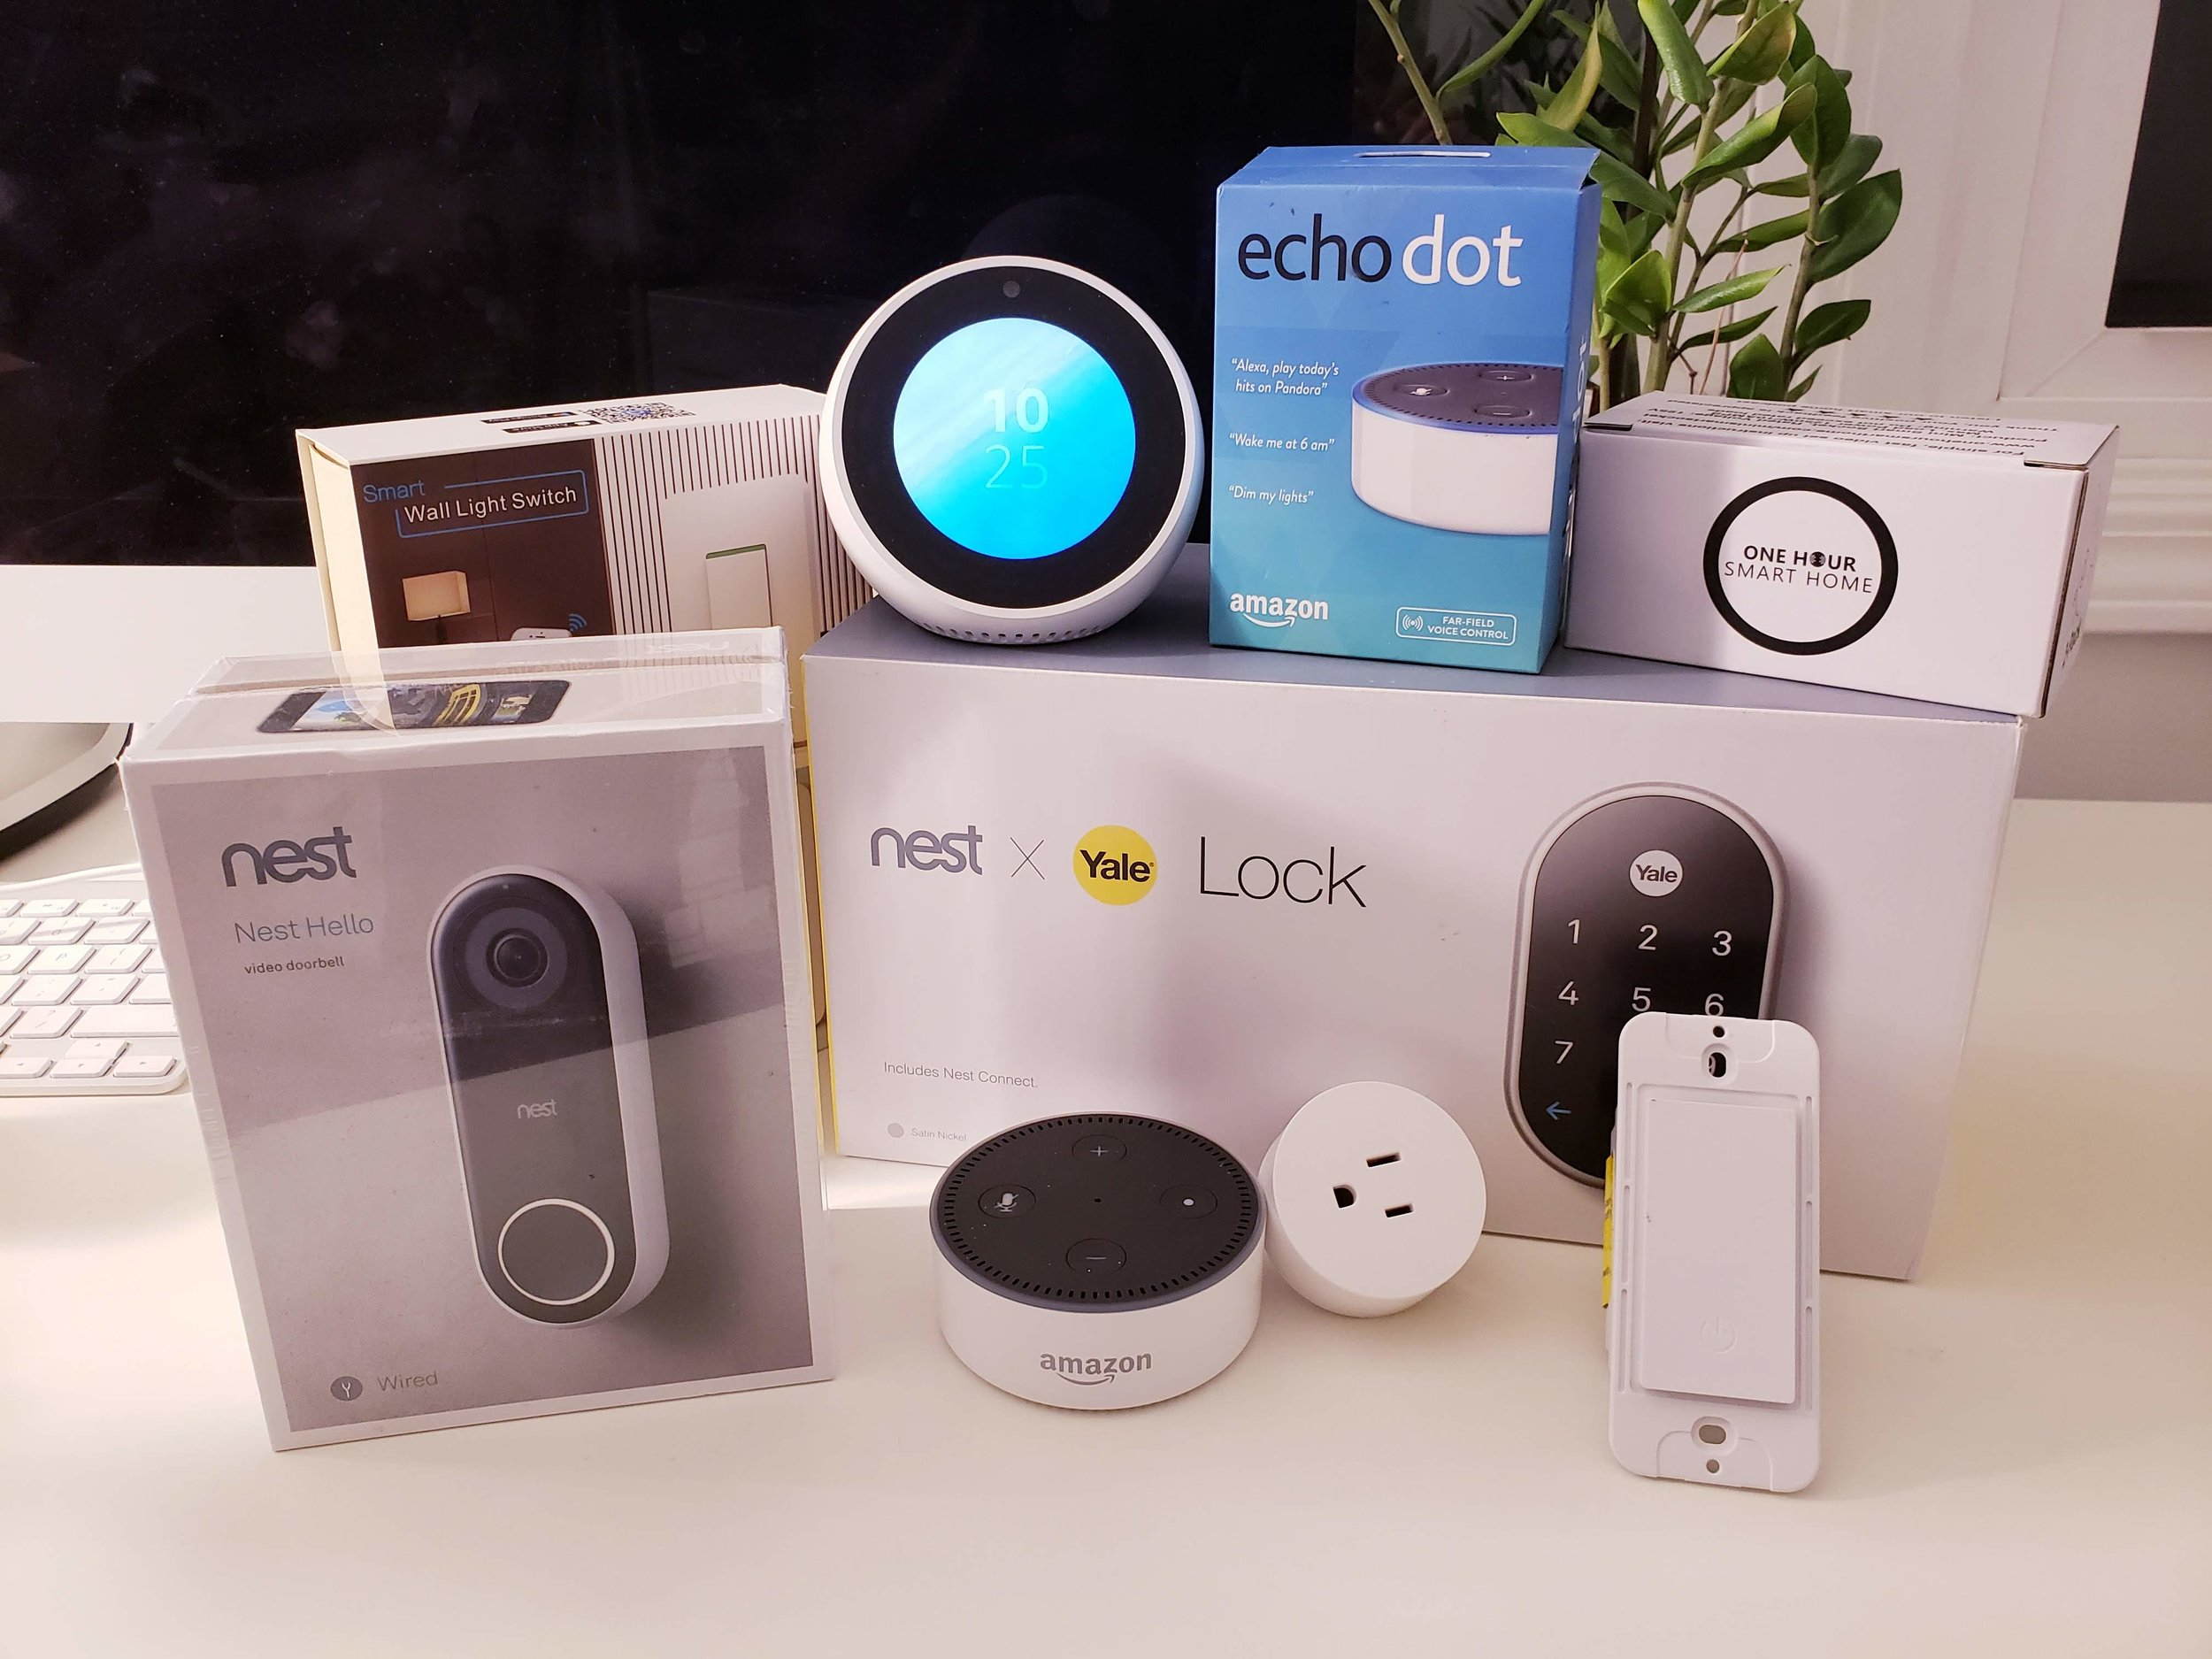 Does the nest smart lock work with  Alexa ?